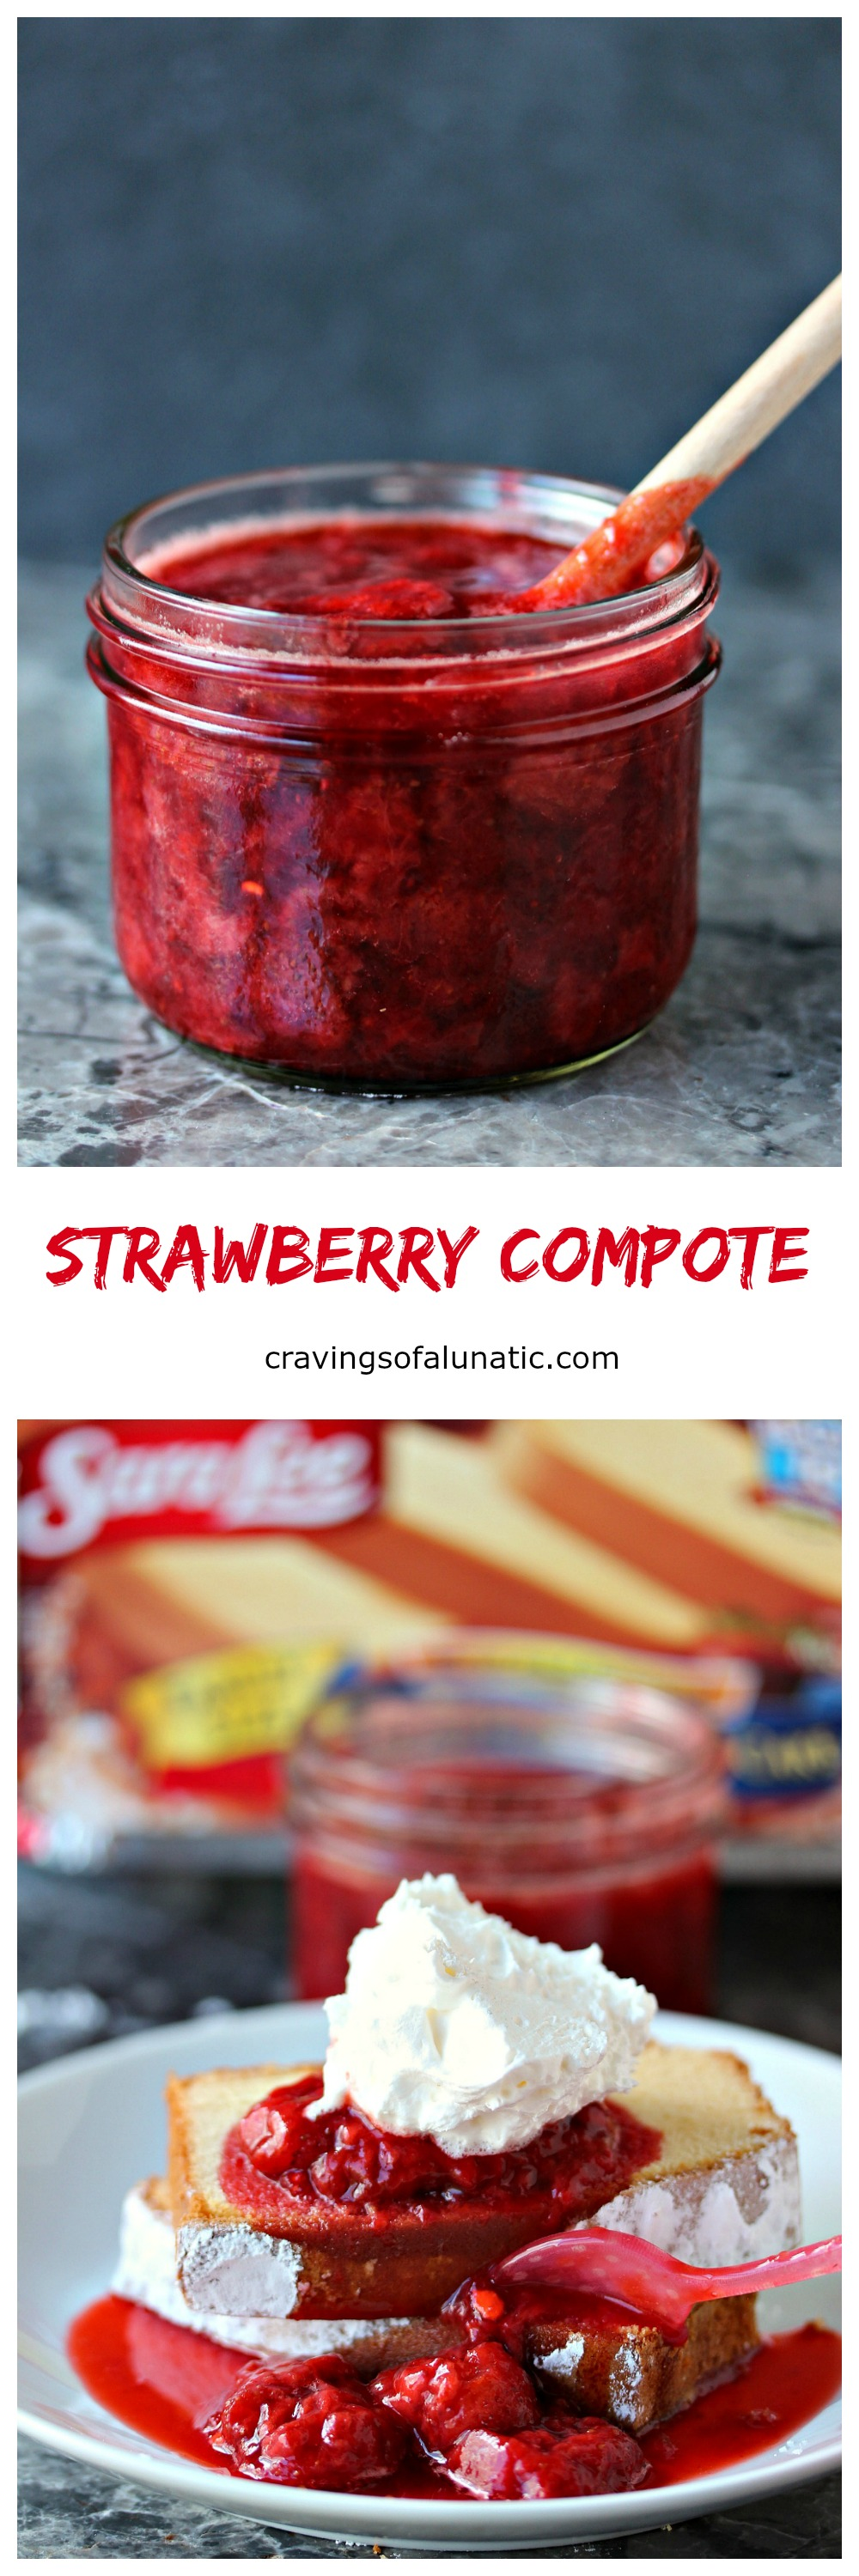 Strawberry Compote from cravingsofalunatic.com- Simple to make and utterly delicious. This 3 ingredient Strawberry Compote is perfect for pouring over Sara Lee® Pound Cake, or ice cream, or anything else you little heart desires! (@CravingsLunatic)